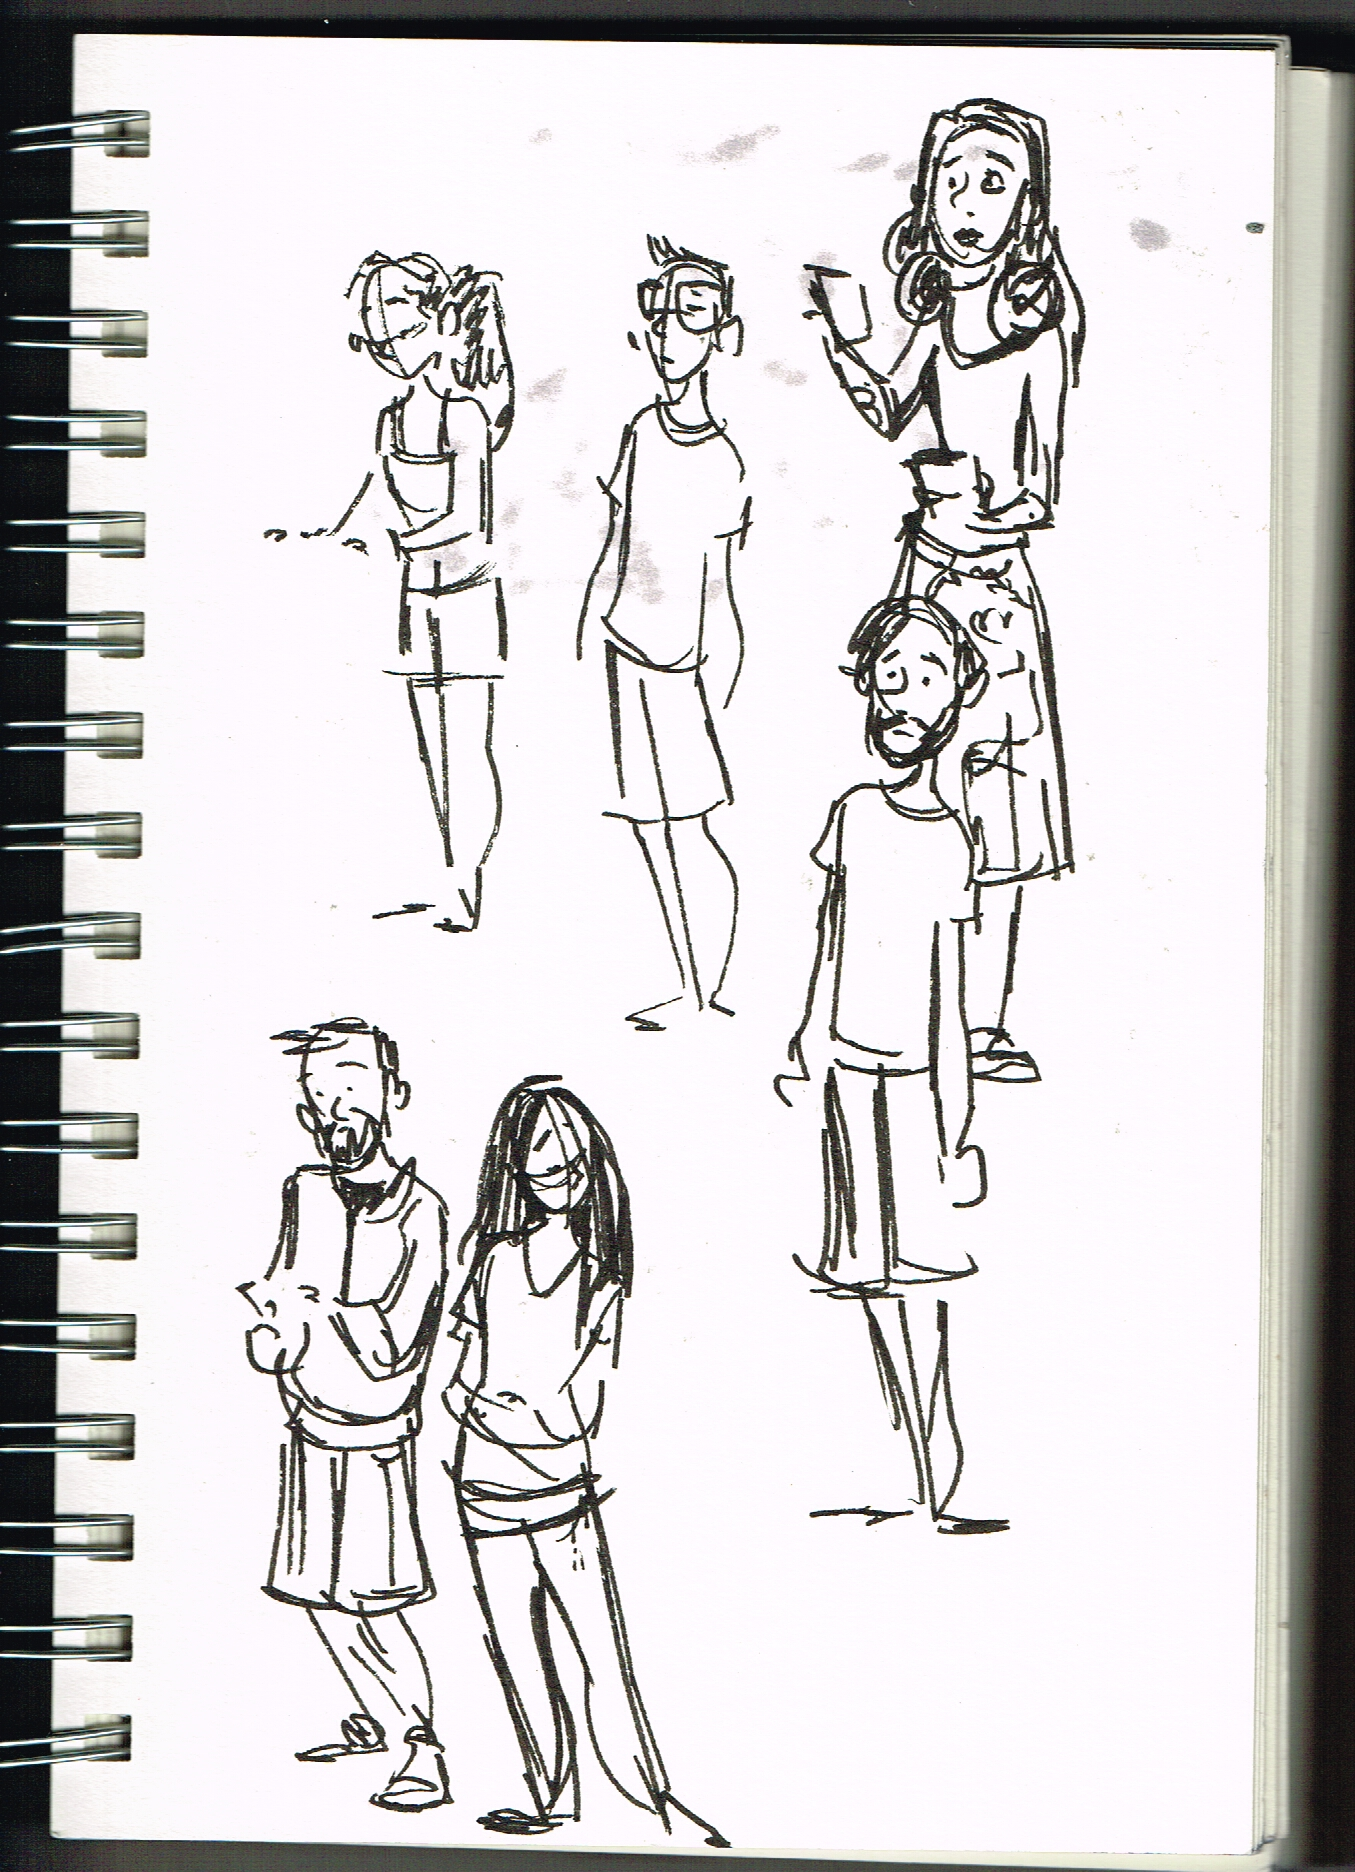 vacation_sketchbook_018.jpg